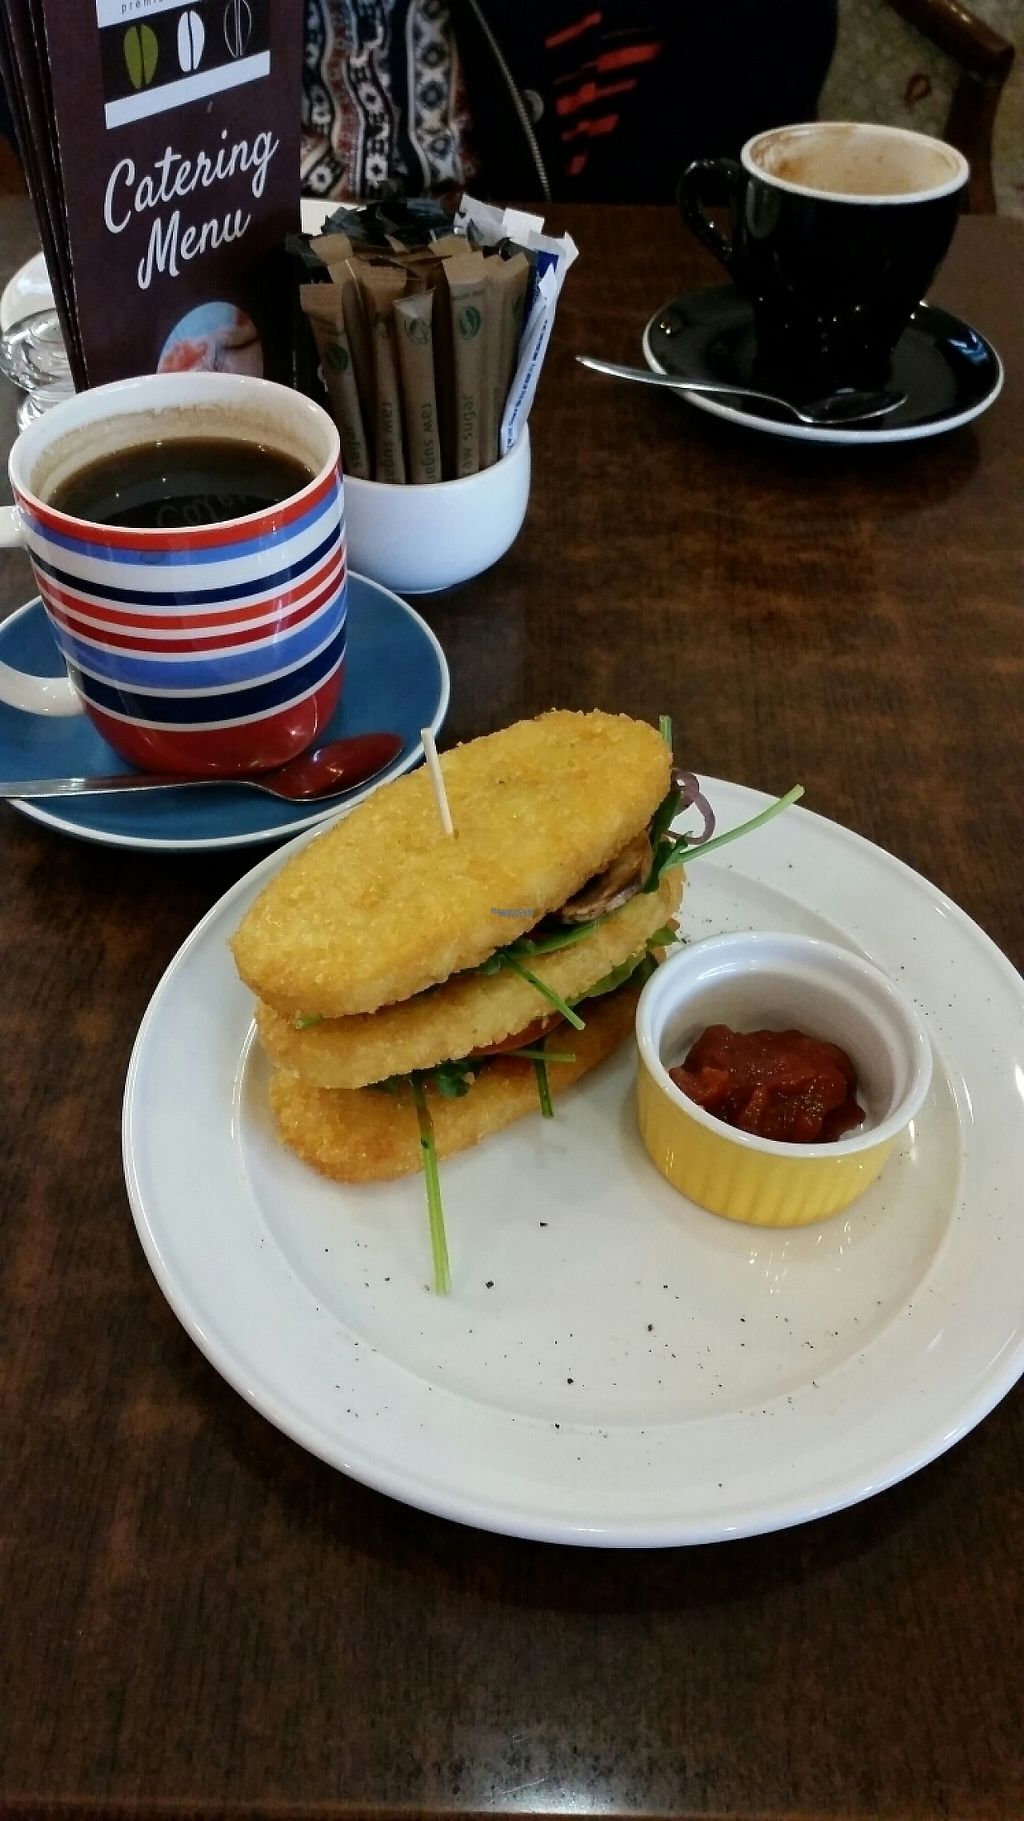 "Photo of Three Bean Cafe  by <a href=""/members/profile/AndyTheVWDude"">AndyTheVWDude</a> <br/>Hash Stack & Relish with Good Coffee <br/> November 12, 2016  - <a href='/contact/abuse/image/82659/188917'>Report</a>"